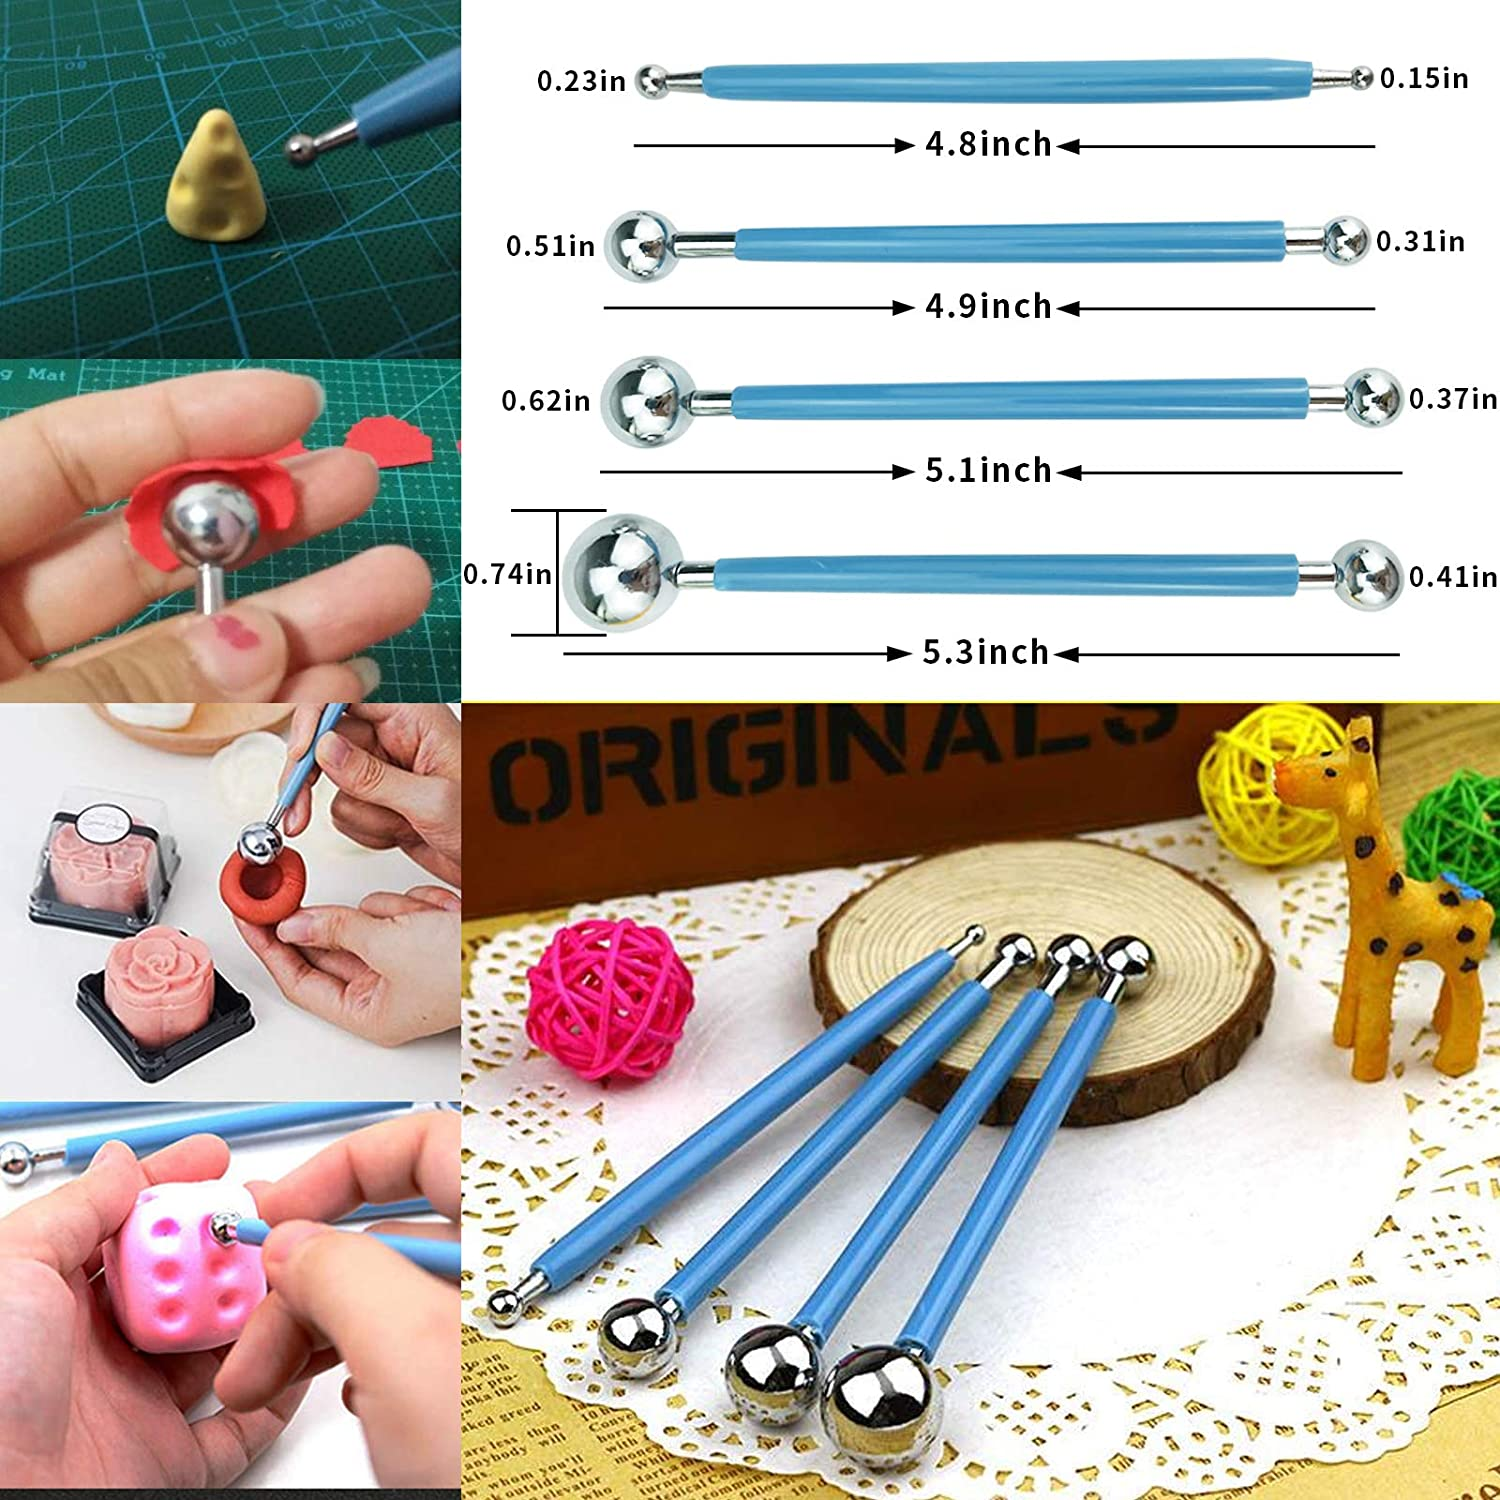 Clay Tools Set 13 Pieces Plastic Clay Tools and 4 Pieces Ball Stylus Dotting Tools Sculpting Tools Suitable for Clay Ceramic Crafts DIY Cake Fondant Decoration